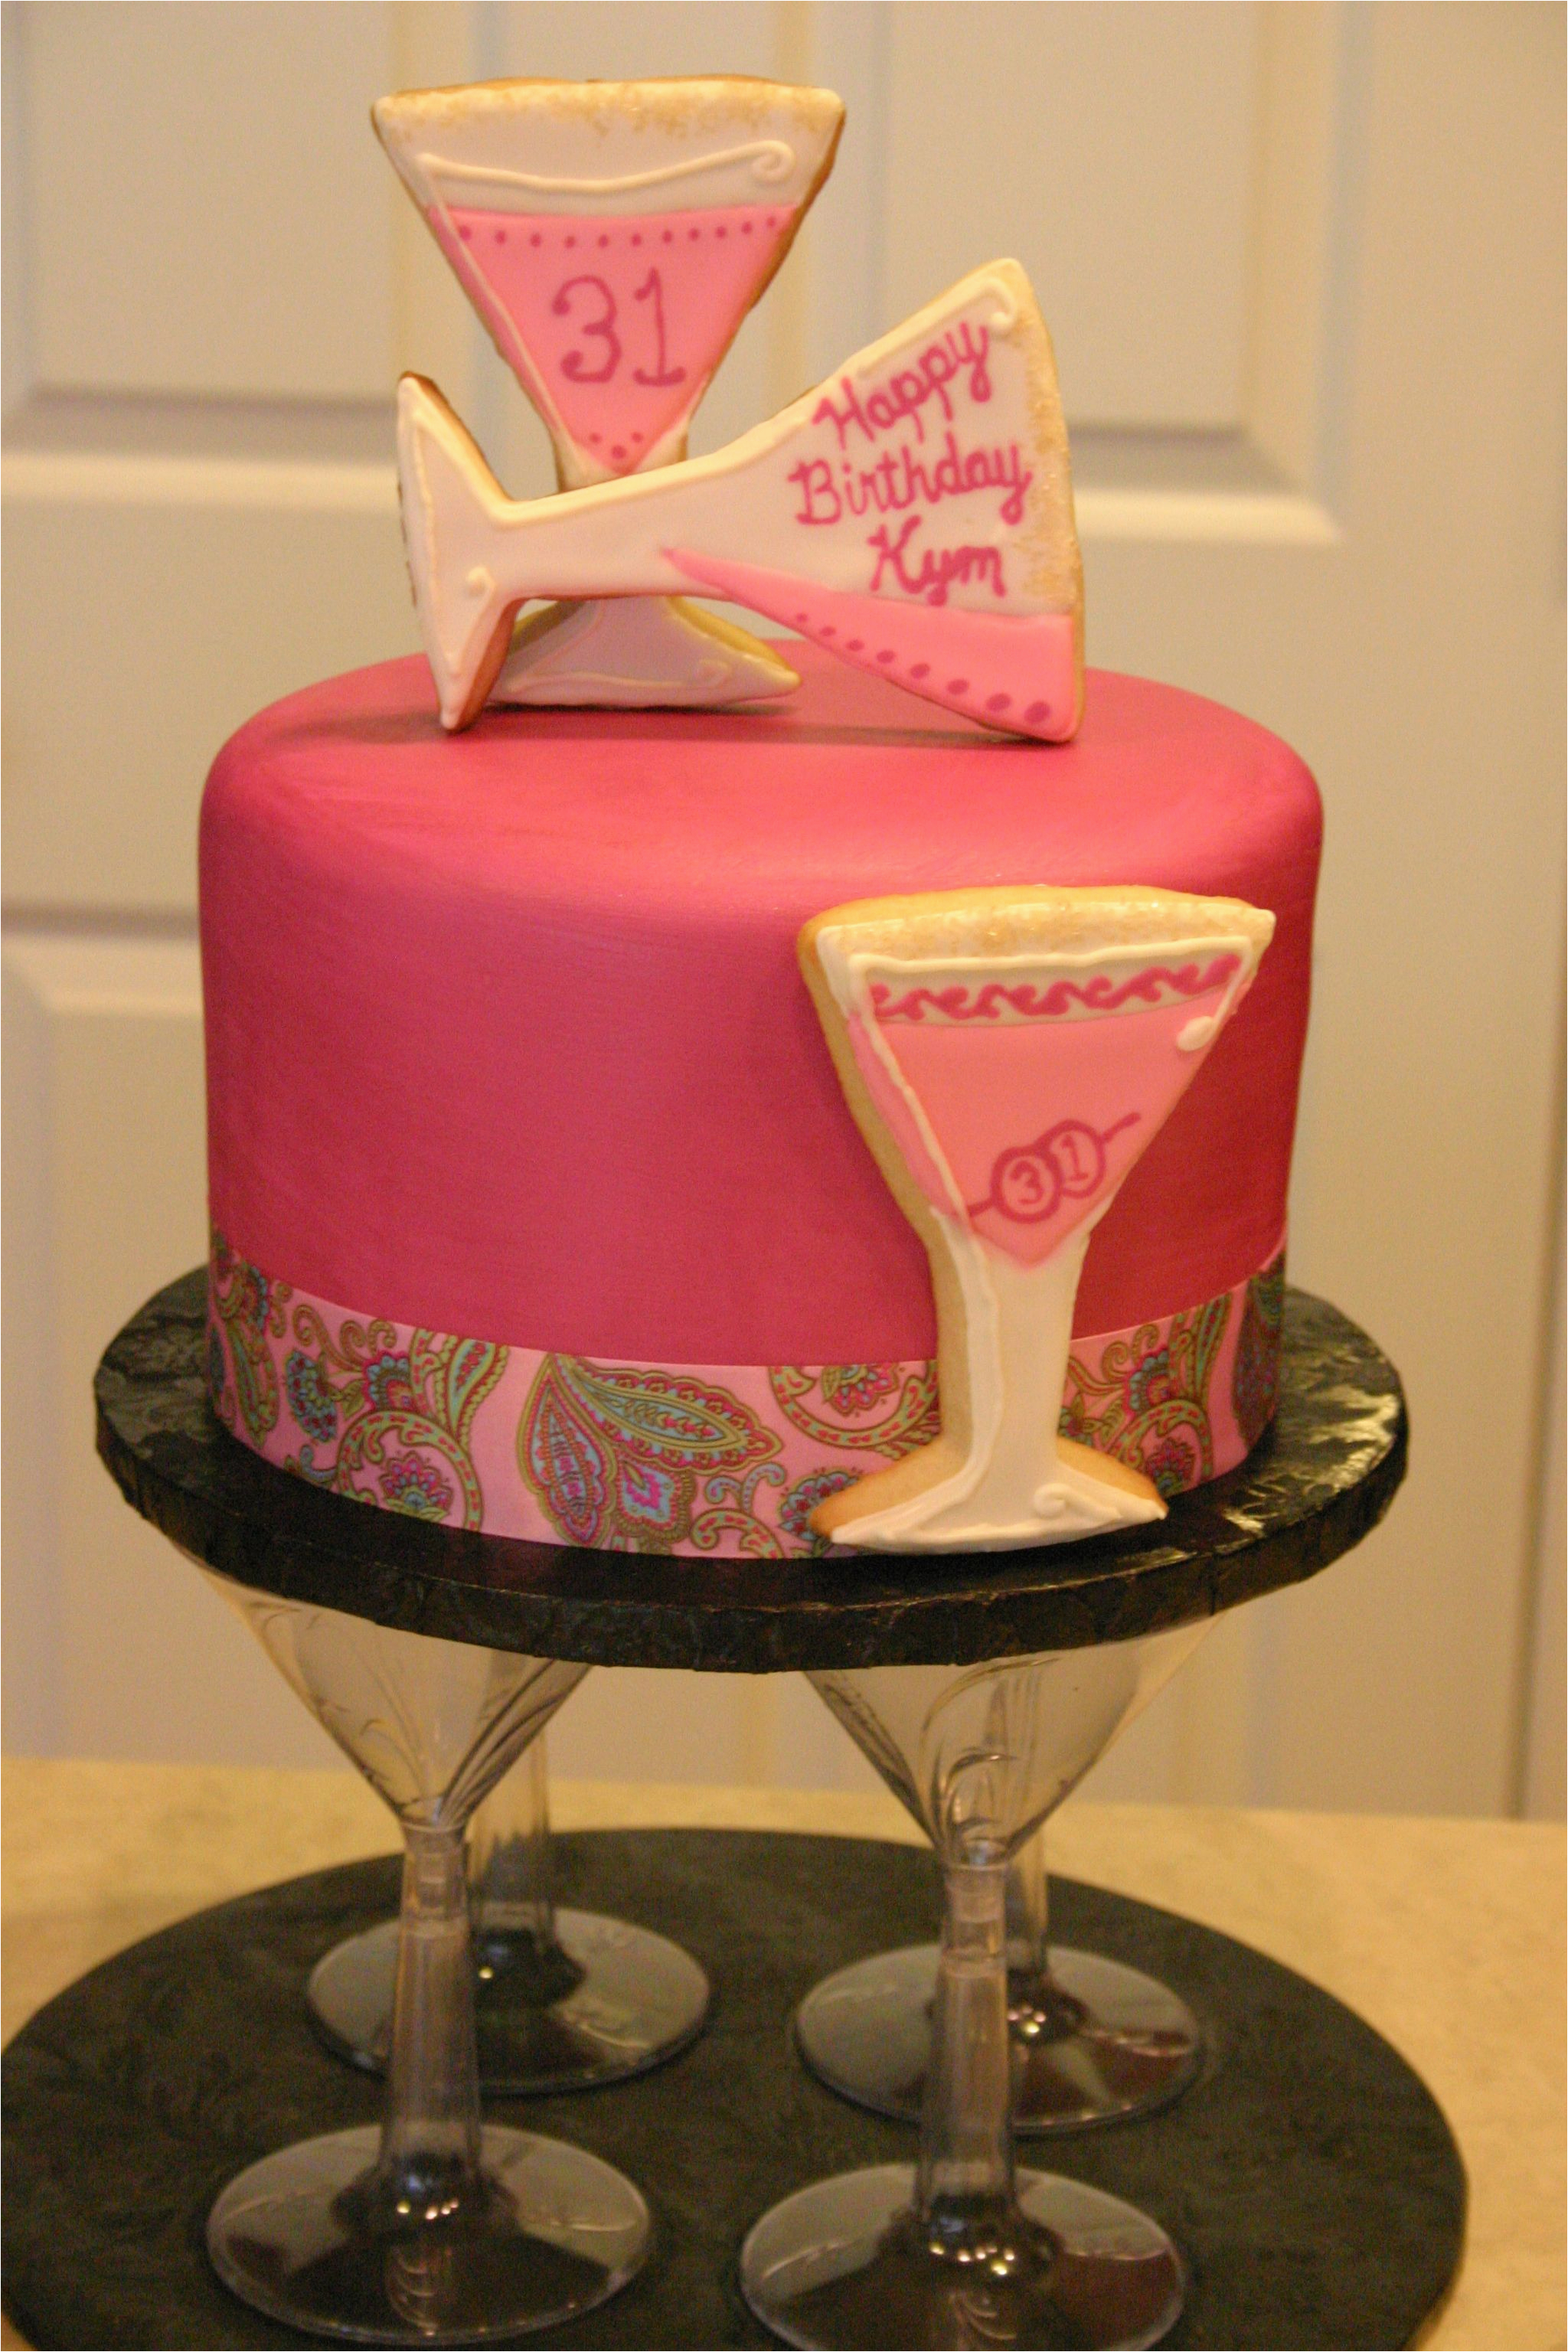 31st Birthday Decorations Pink and Magenta Martini themed Cake the Client Wanted A